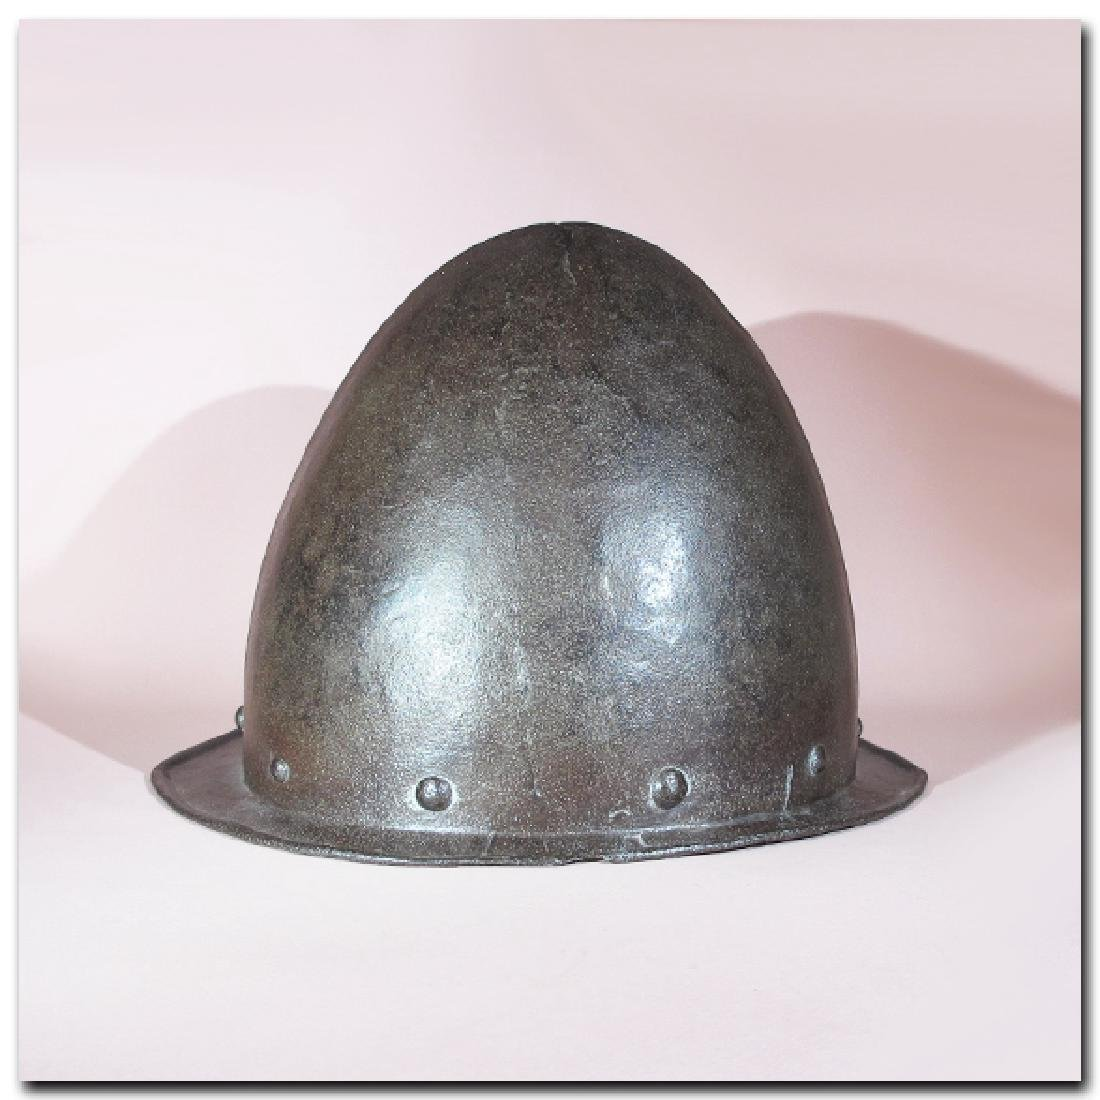 Spanish Steel Cabasset Helmet, 16th Century A.D. - 4